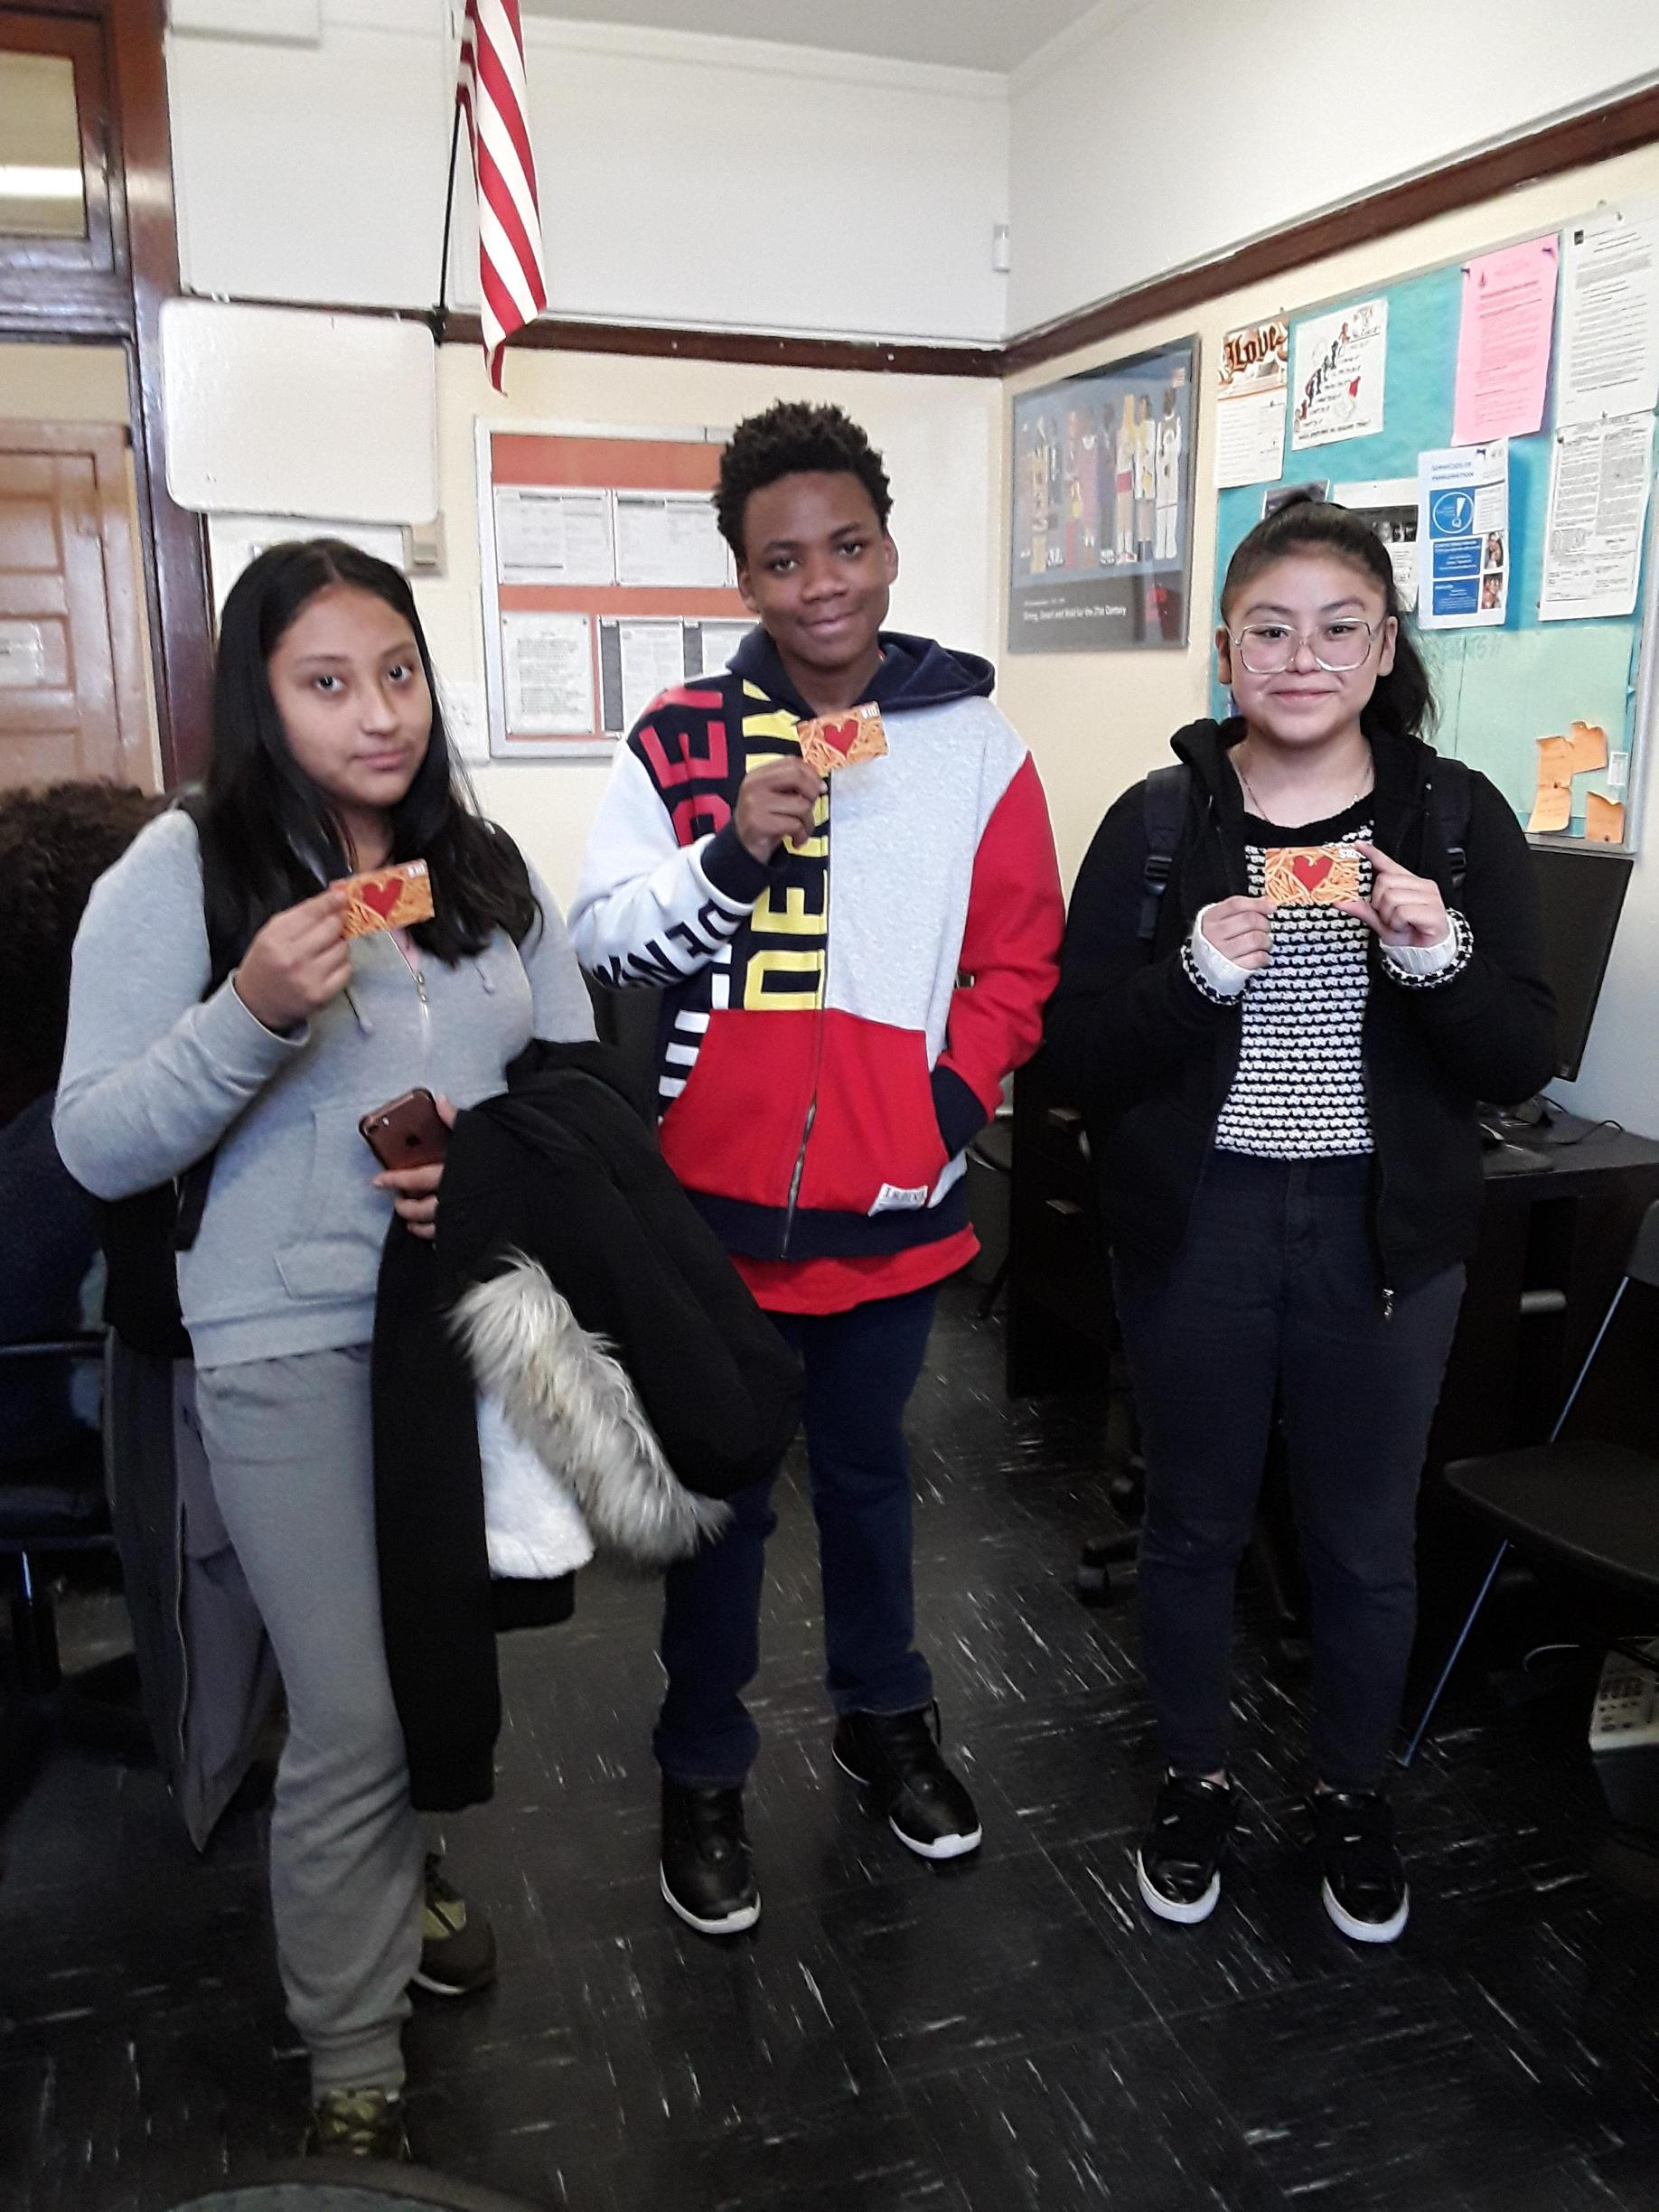 These students each won a $10 McDonalds gift card for improving her grades. Keep up the great work!